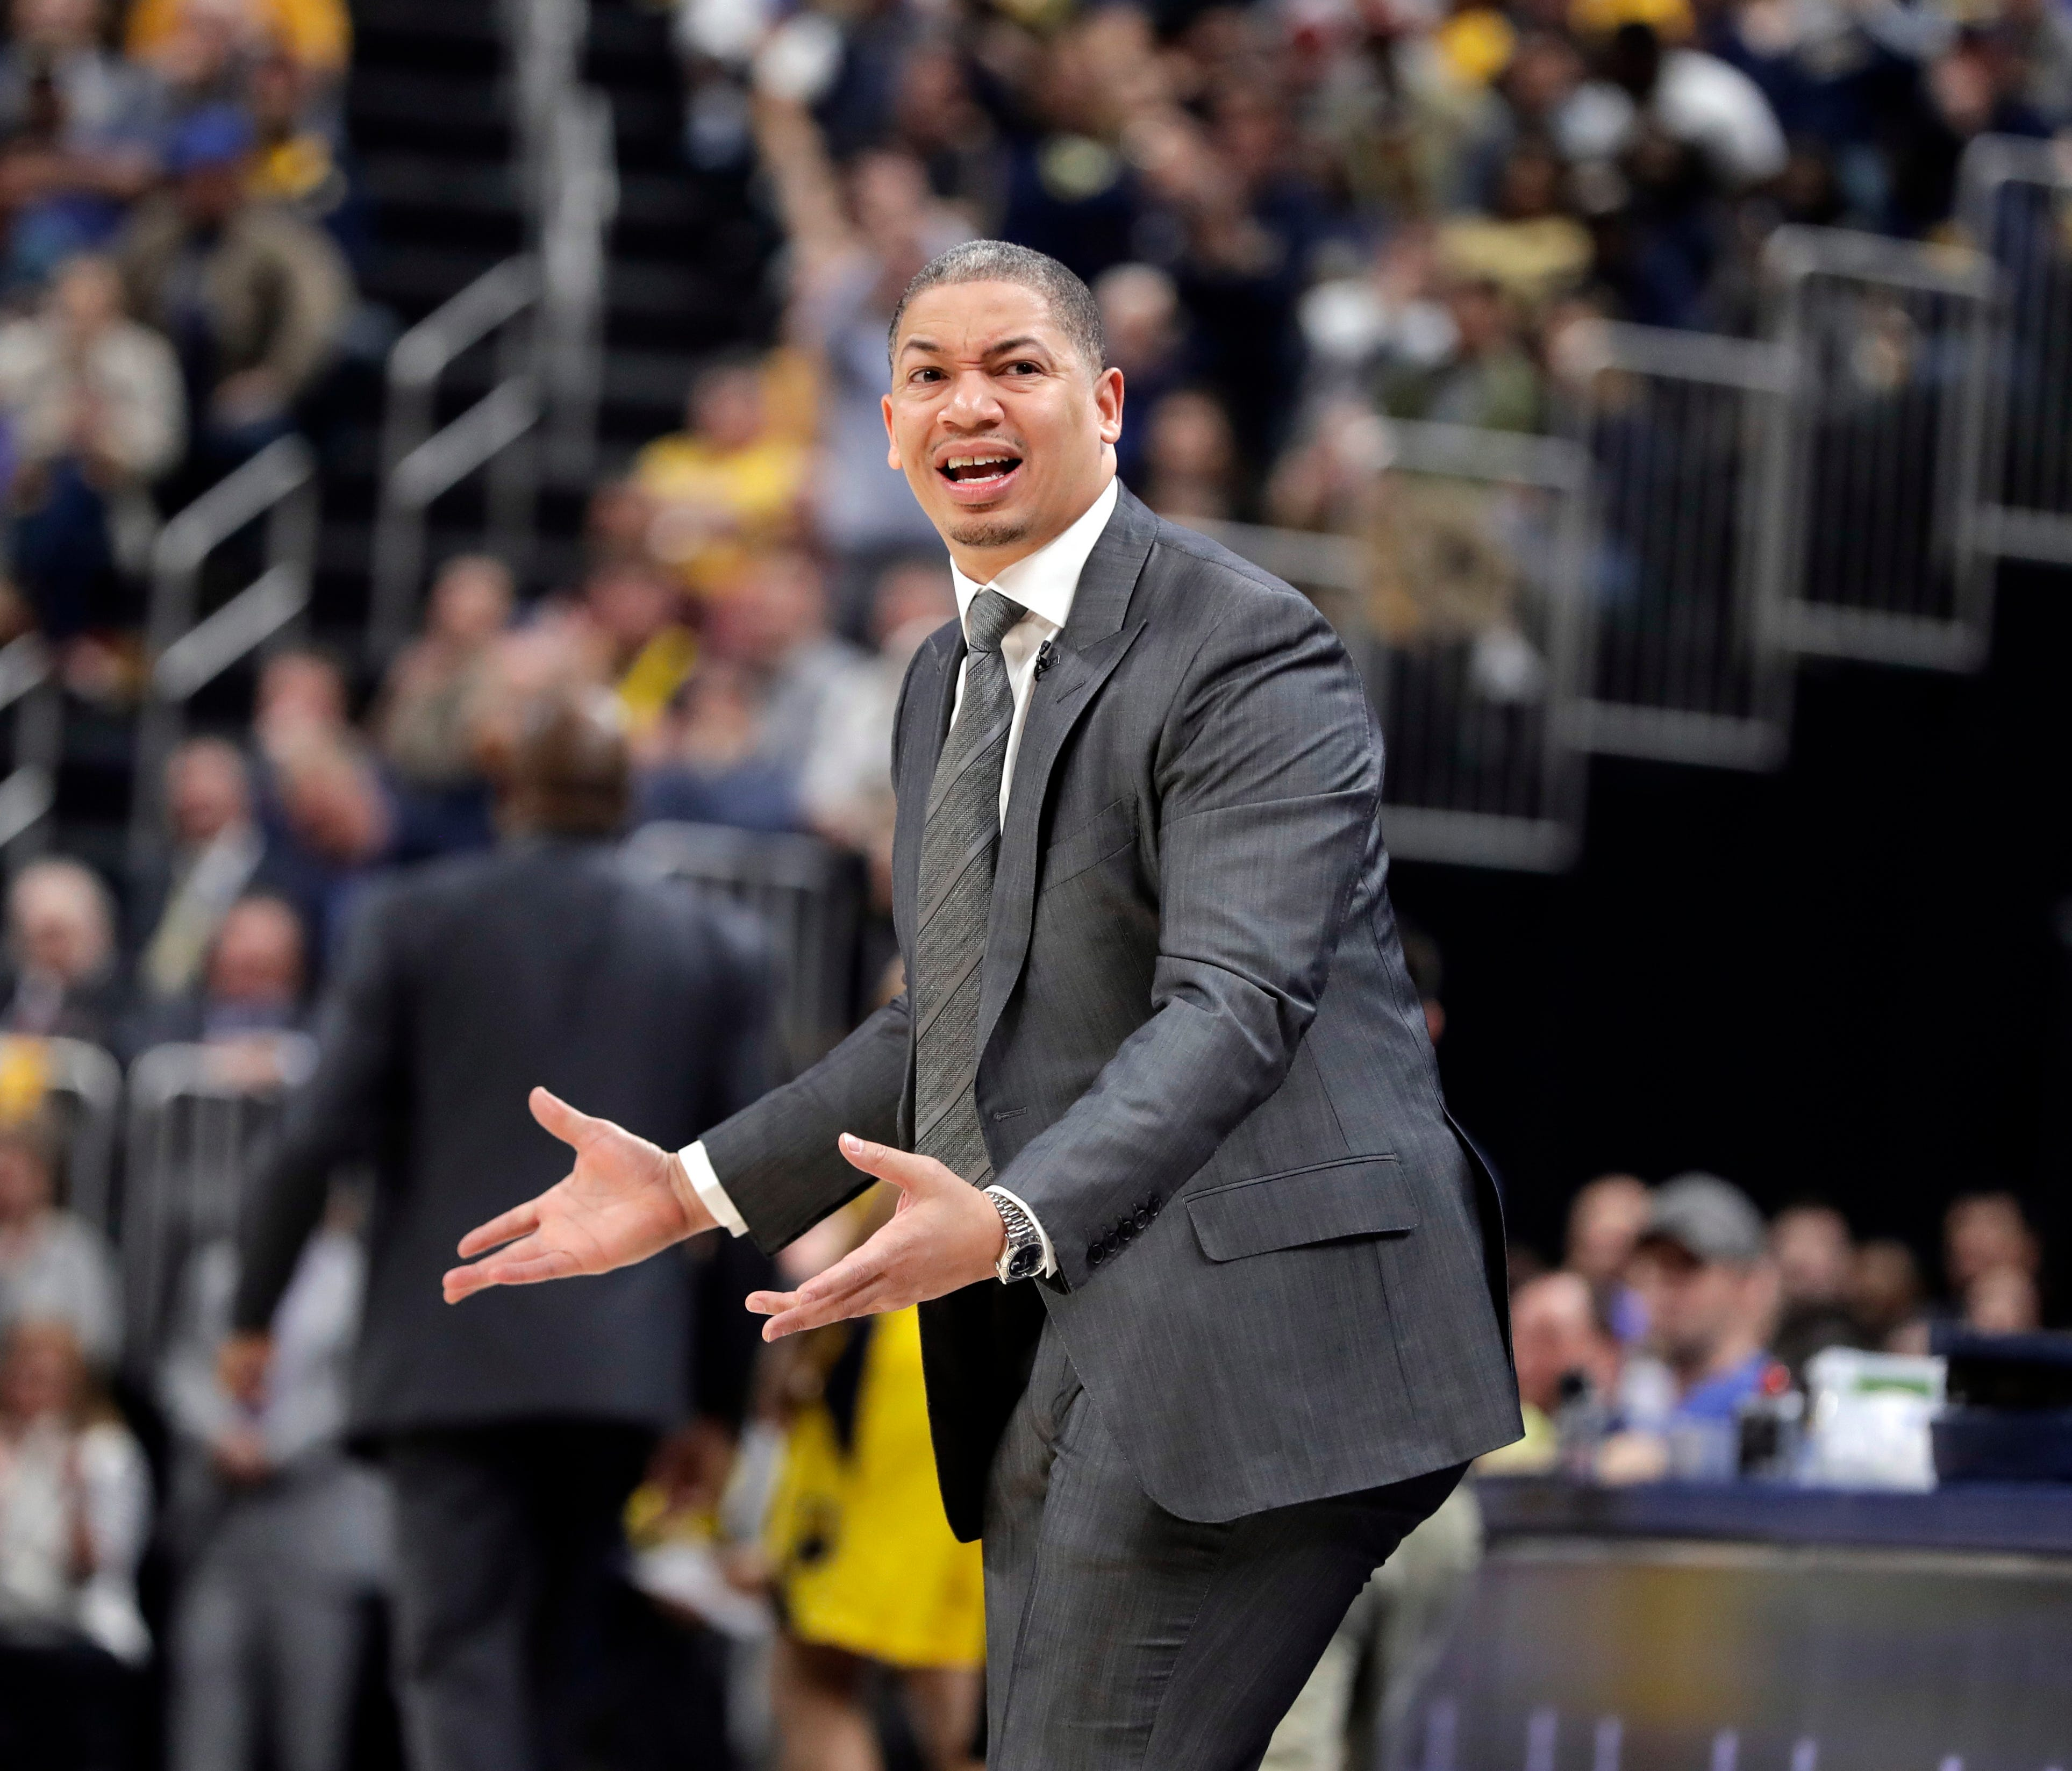 Cleveland Cavaliers head coach Tyronn Lue is seen on the sidelines during the first half of Game 4 against the Pacers.